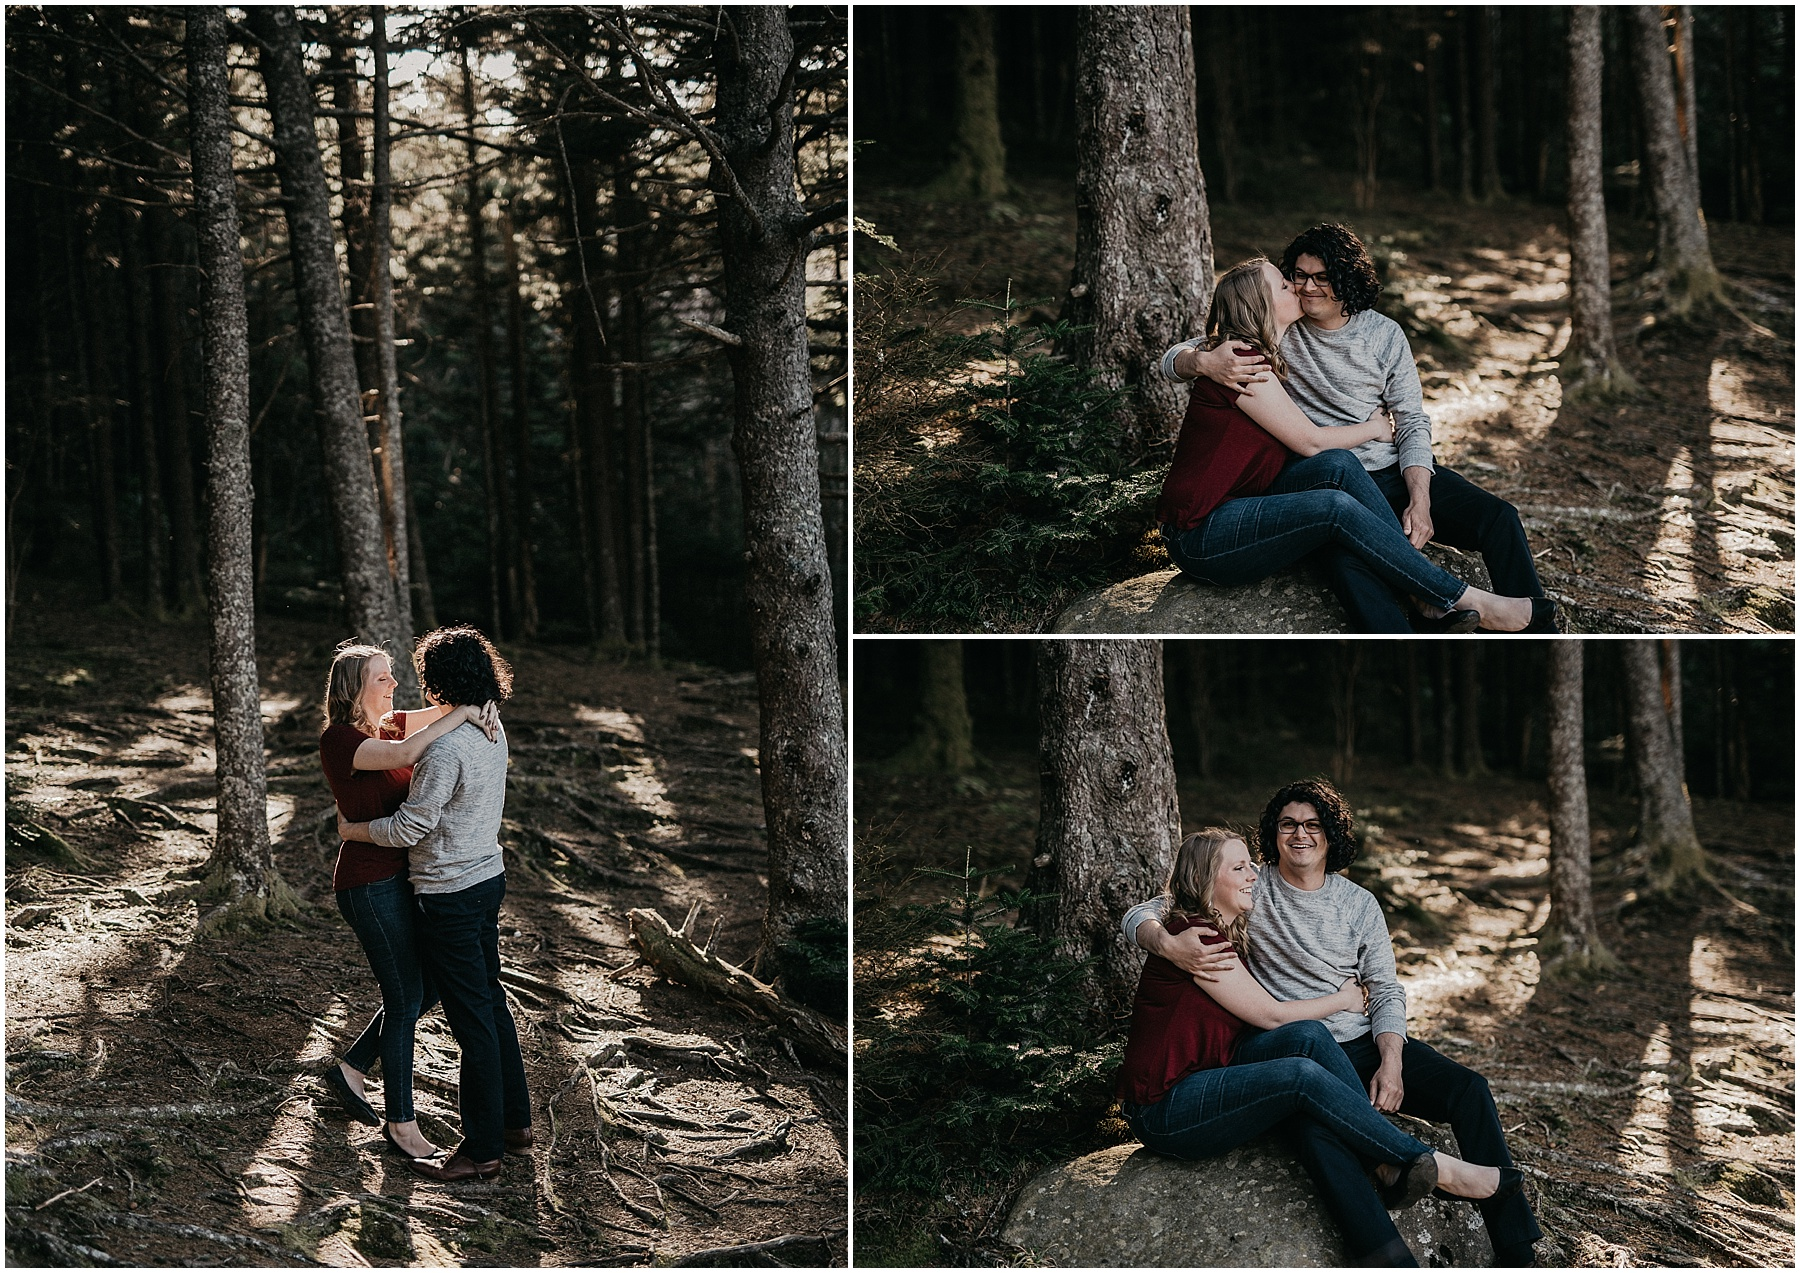 Boone_Engagement_Photographer_02.jpg